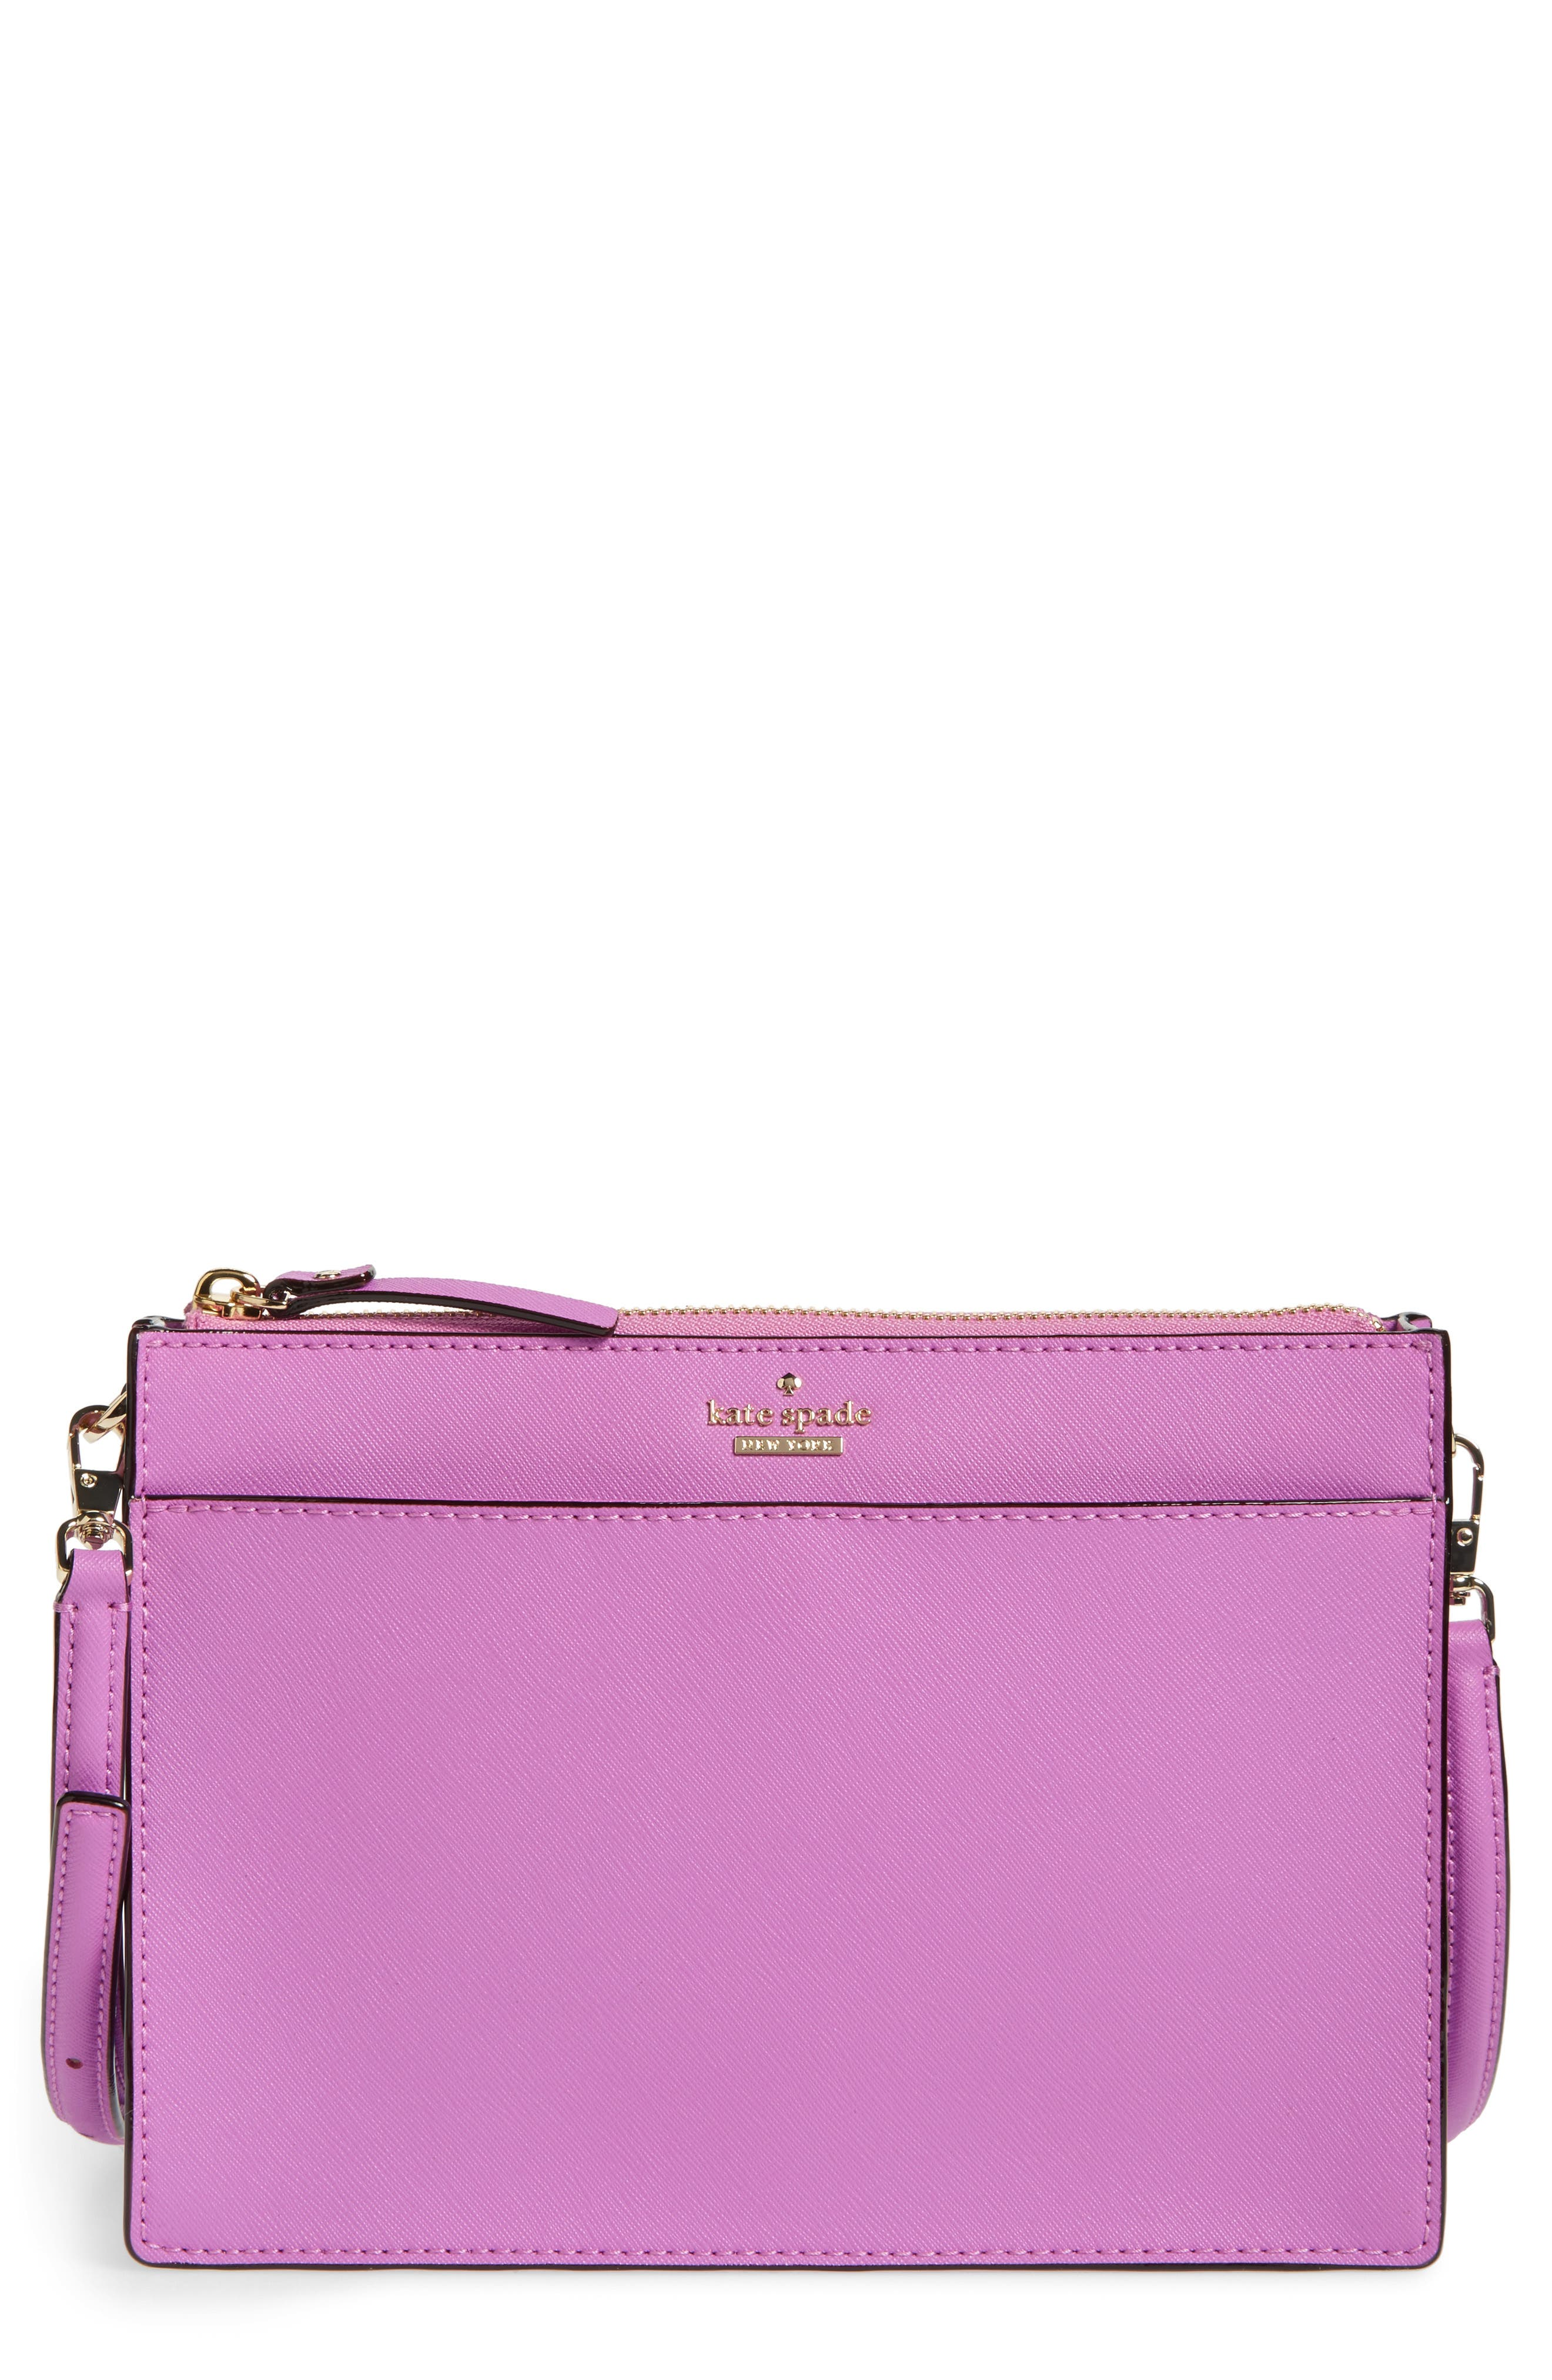 Main Image - kate spade new york cameron street clarise leather shoulder bag